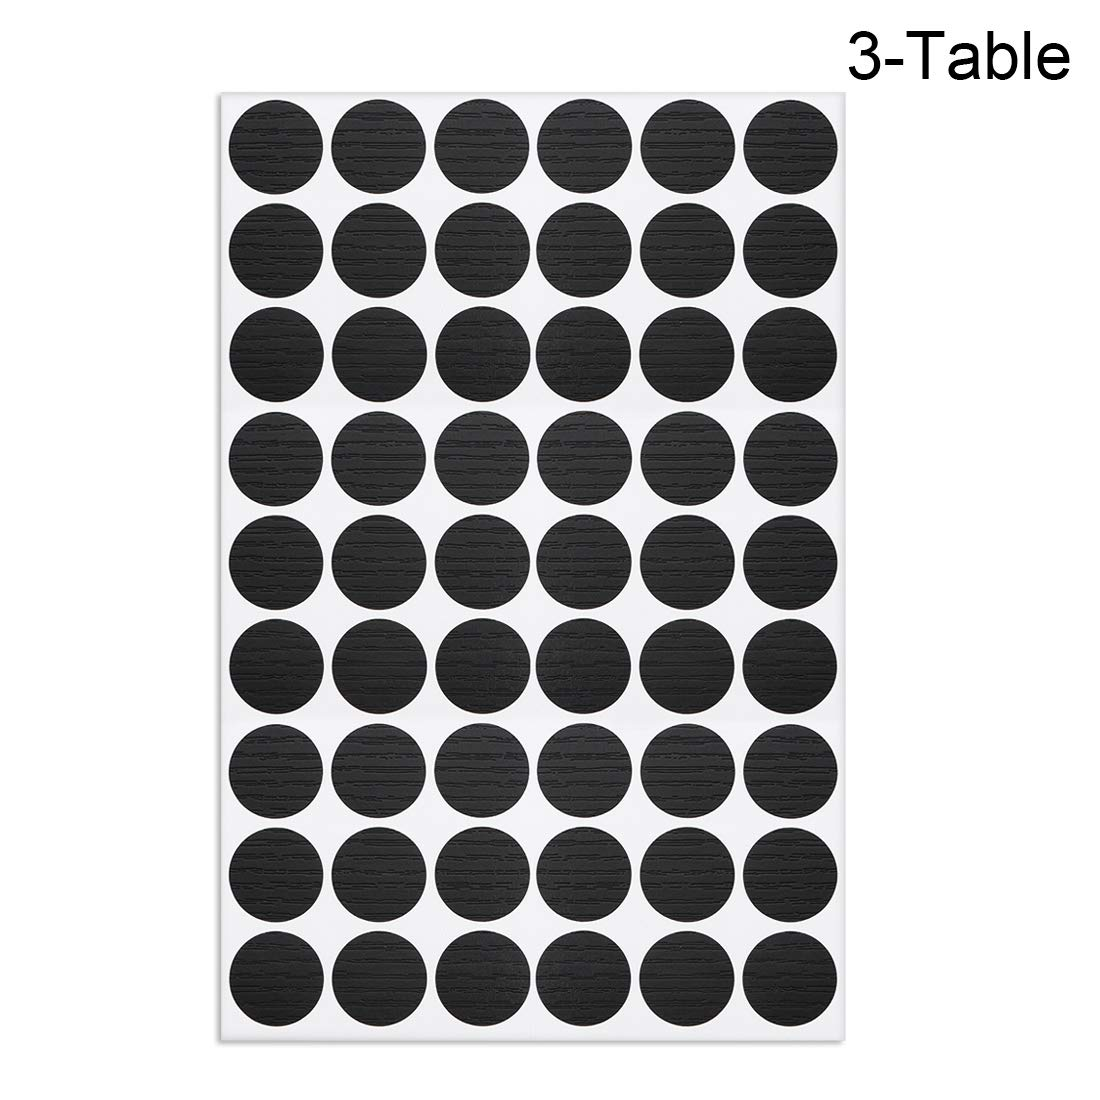 uxcell Self-Adhesive Screw Hole Stickers,2-Table Self-Adhesive Screw Covers Caps Dustproof Sticker 21mm 54 in 1 White